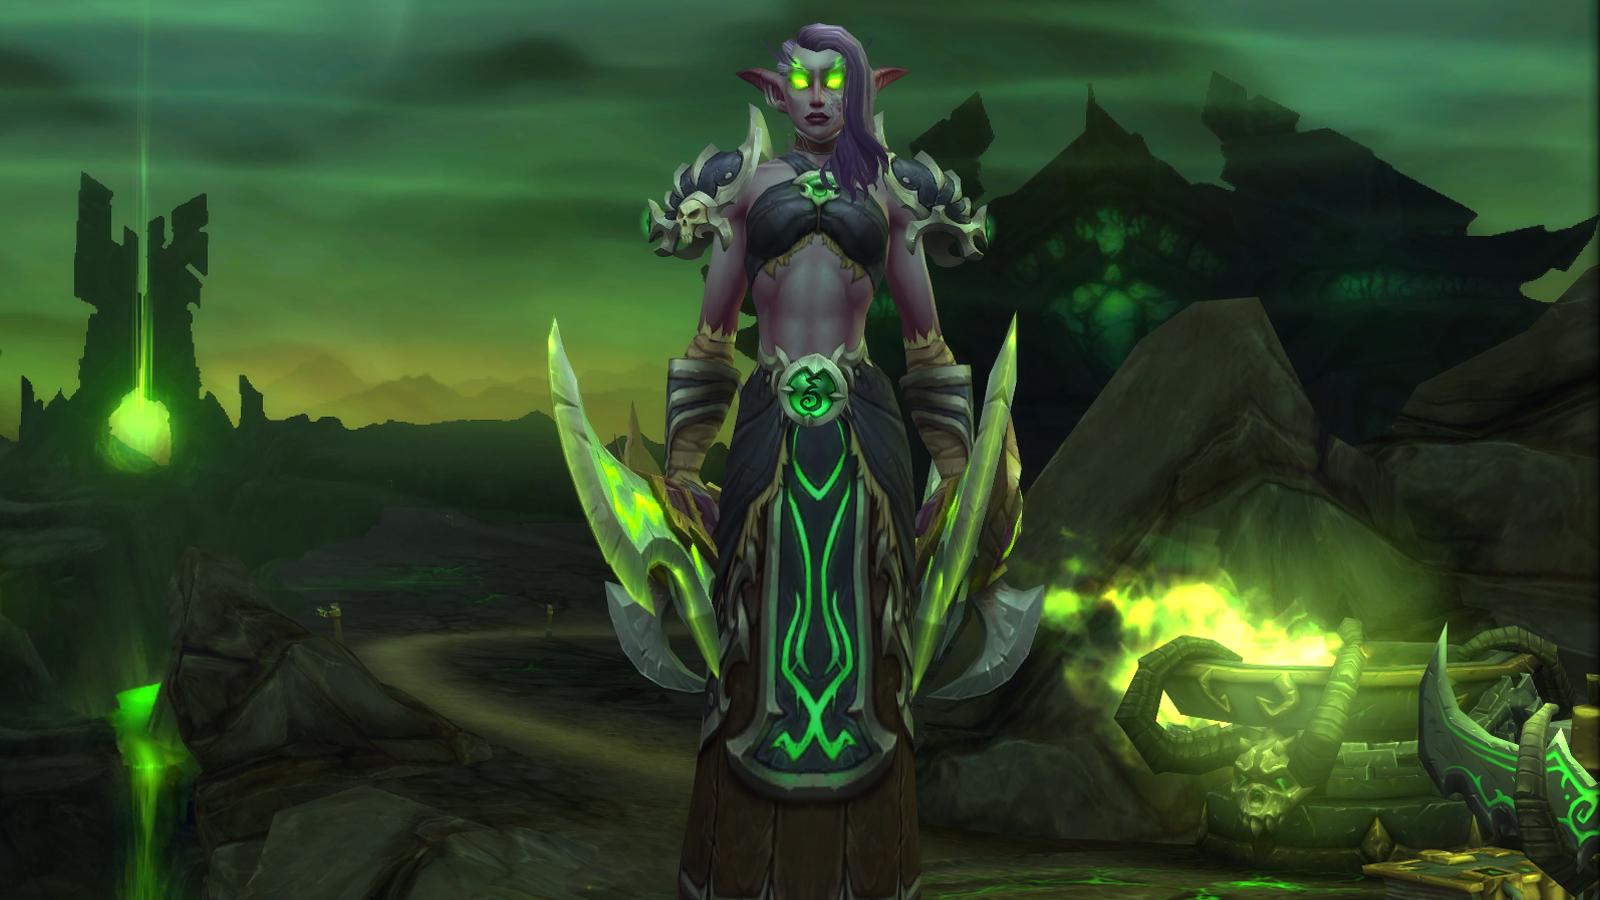 Demon Hunter Night Elf in the character select screen